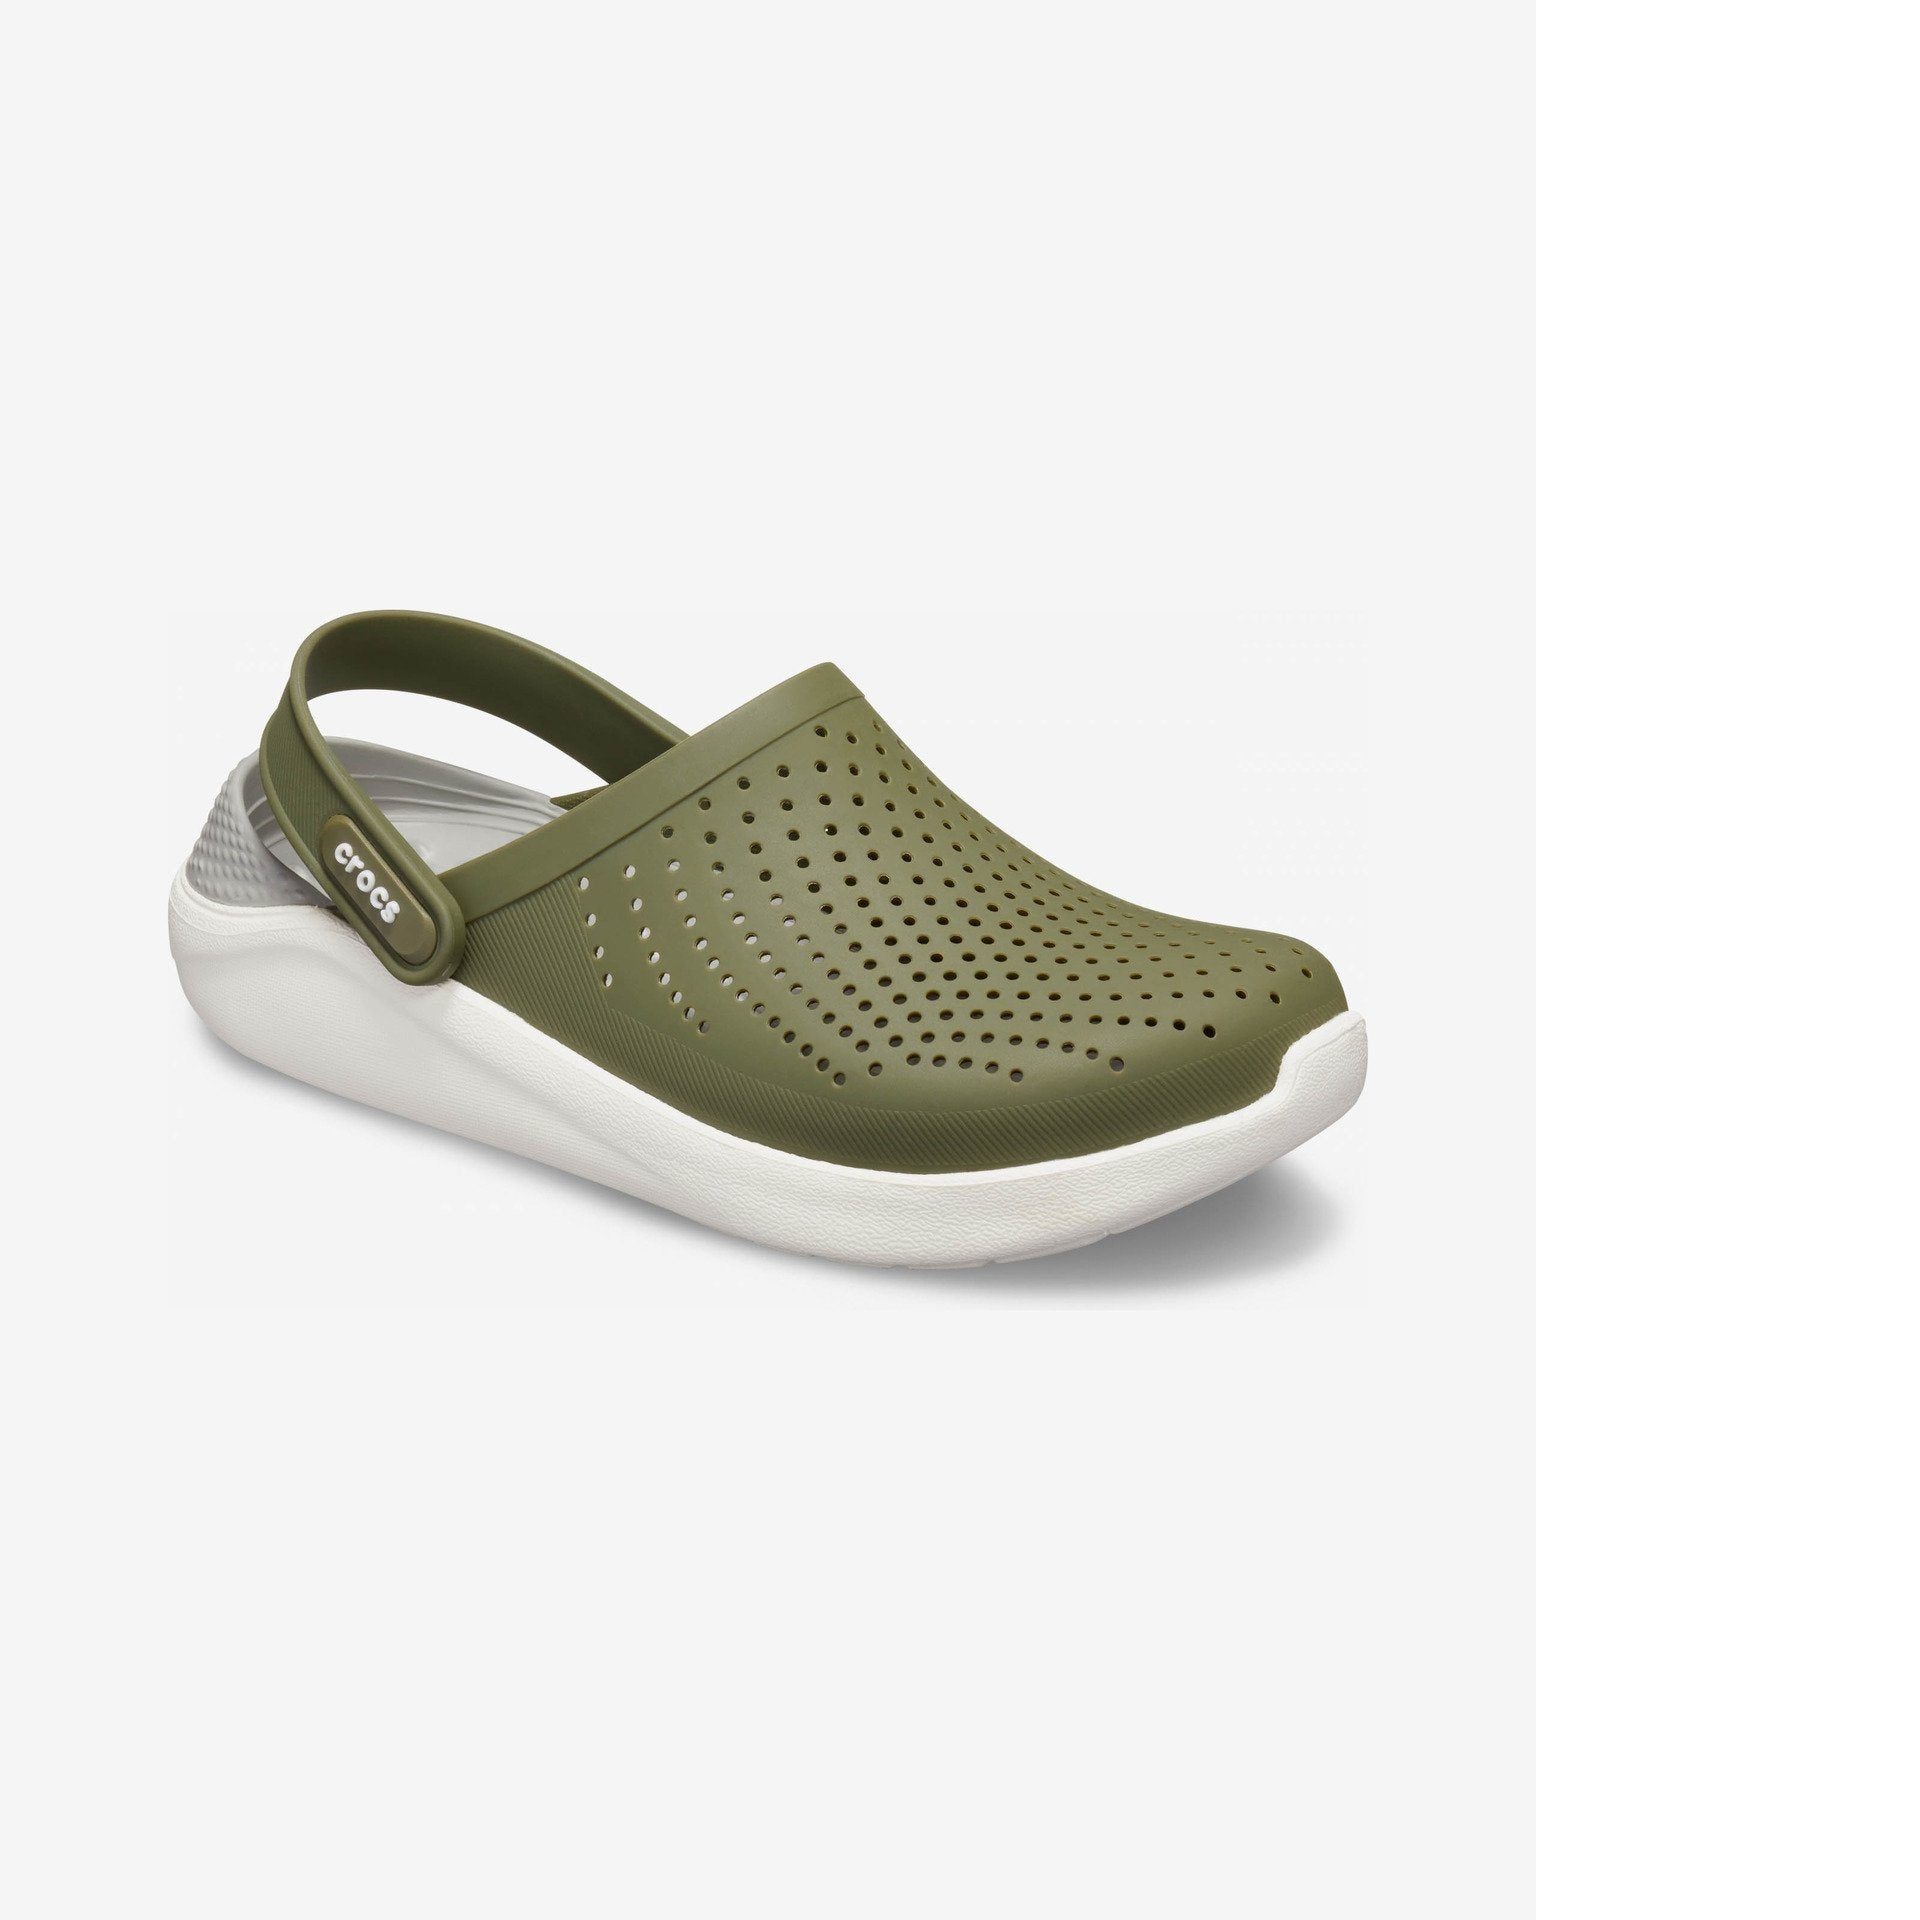 Crocs Lite Ride Clog Army Green Incaltaminte Crocs